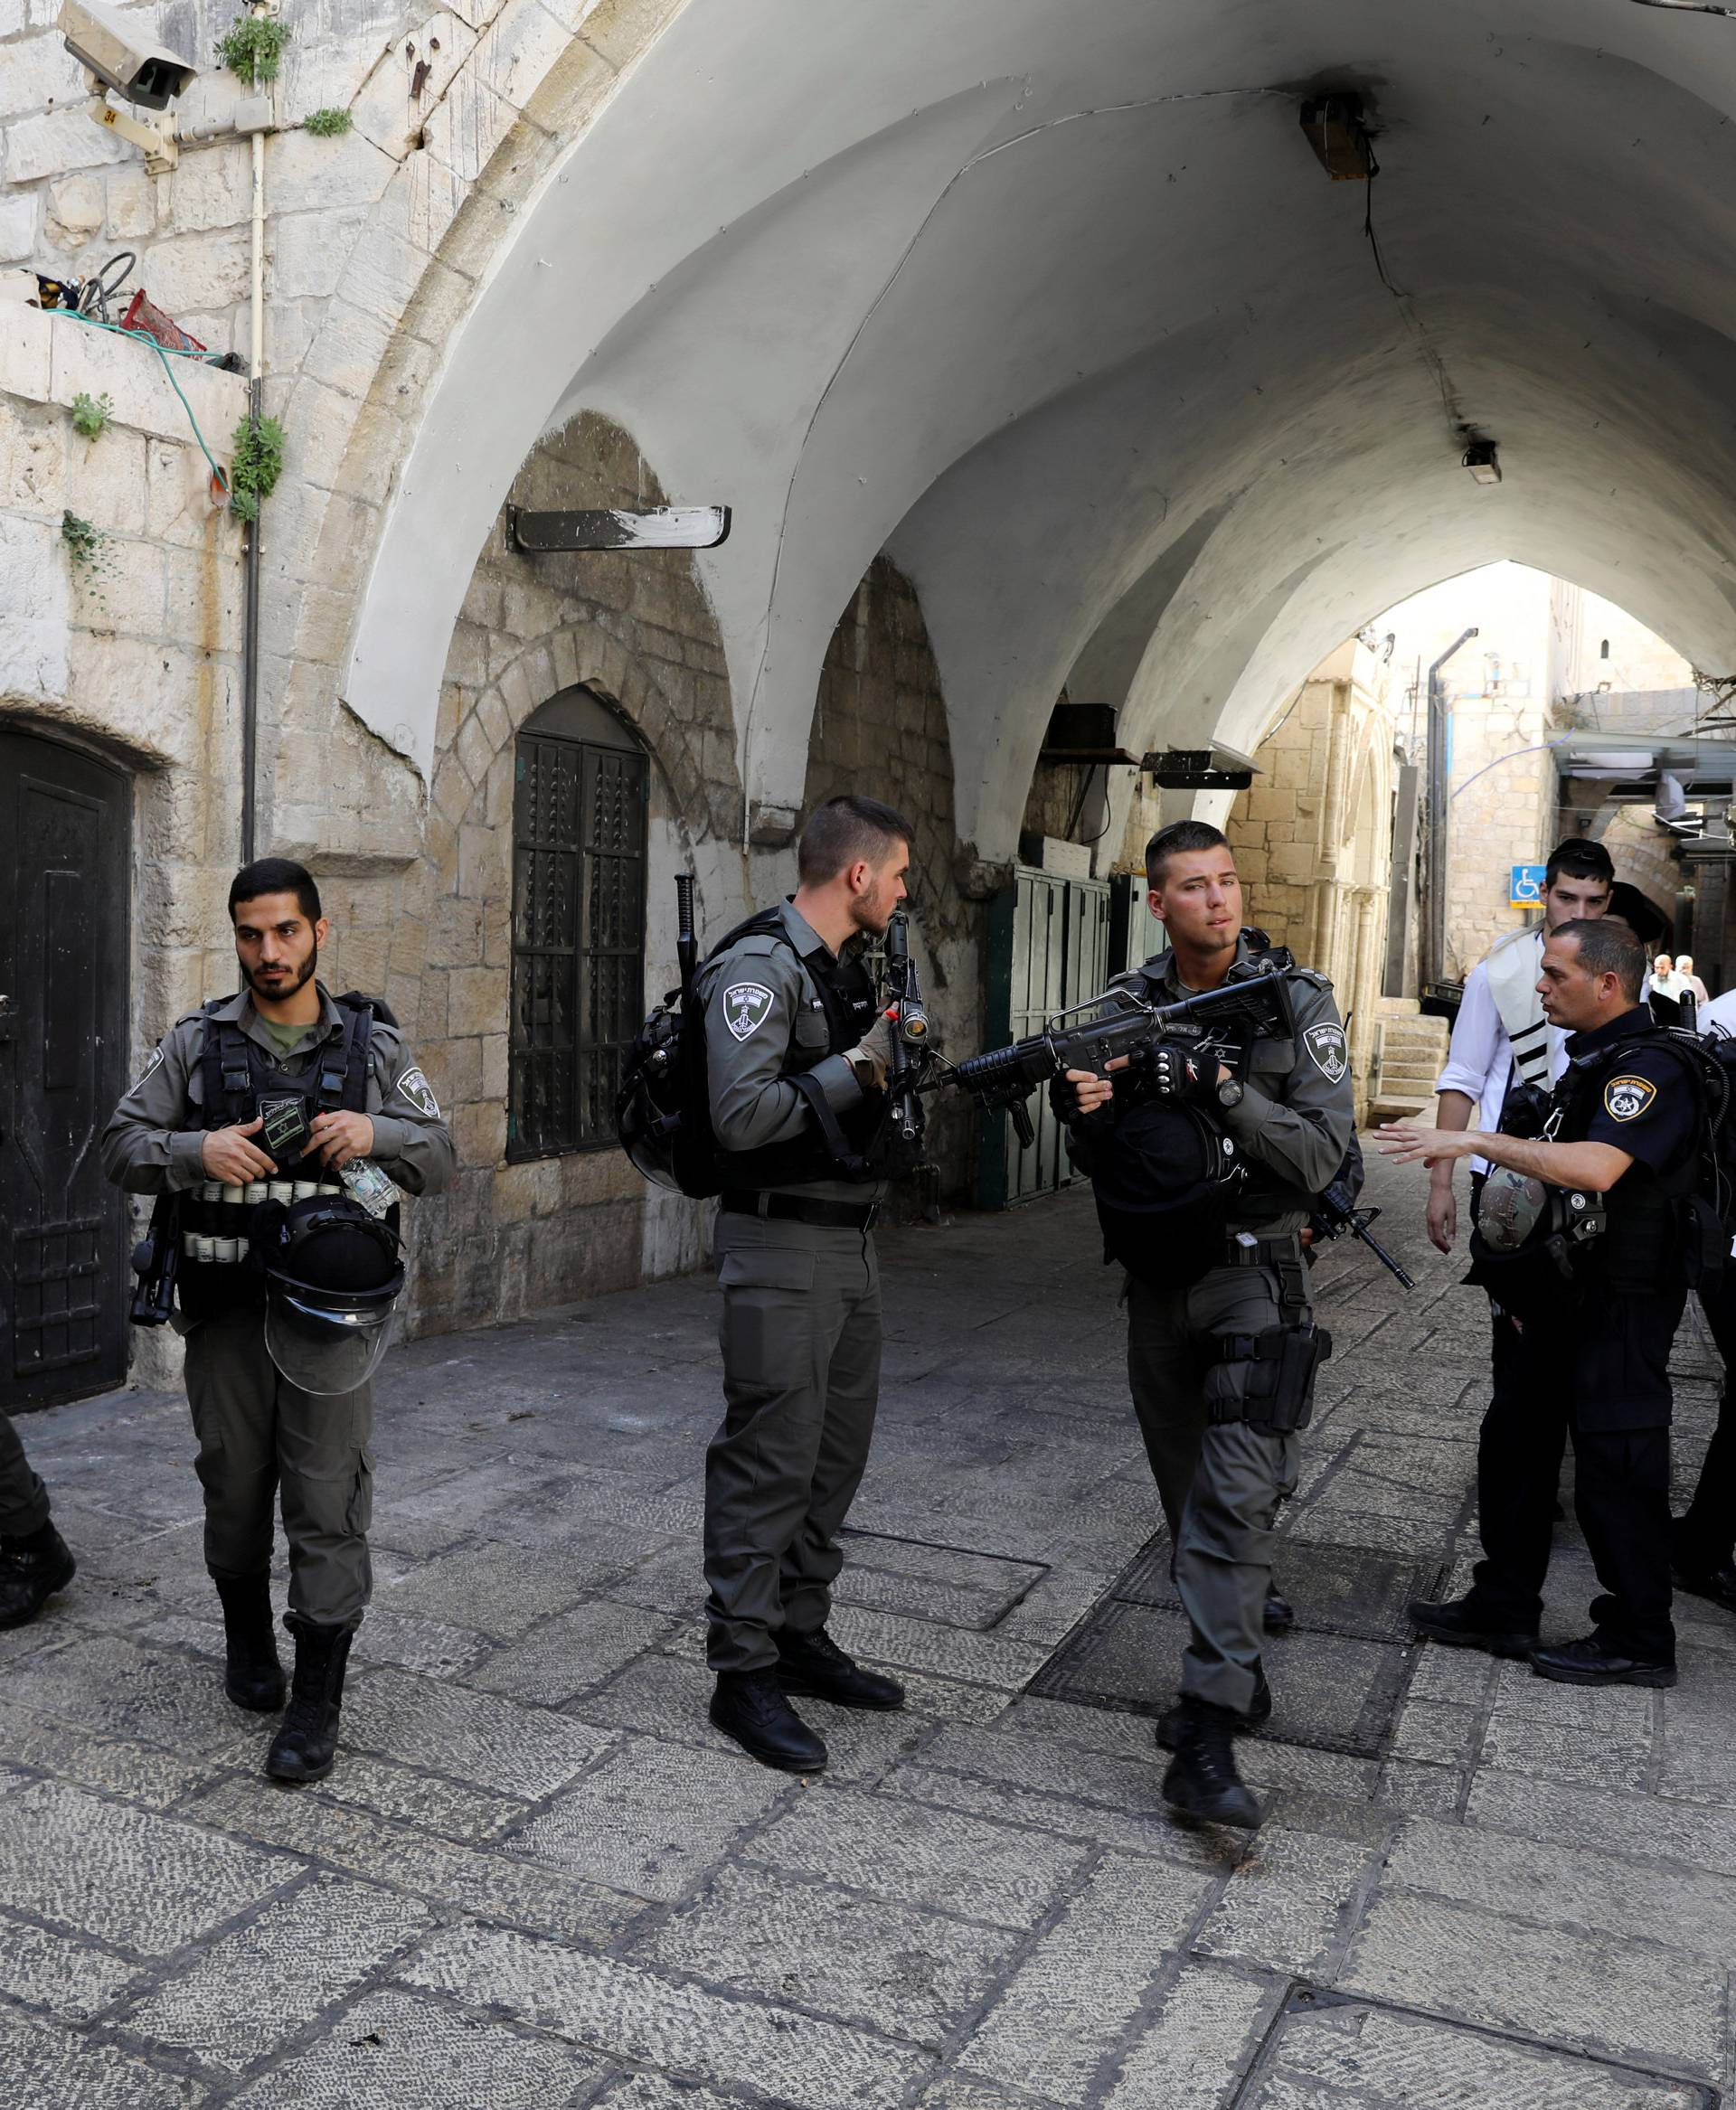 Israeli border policemen secure the area near the scene of the shooting attack, in Jerusalem's Old City